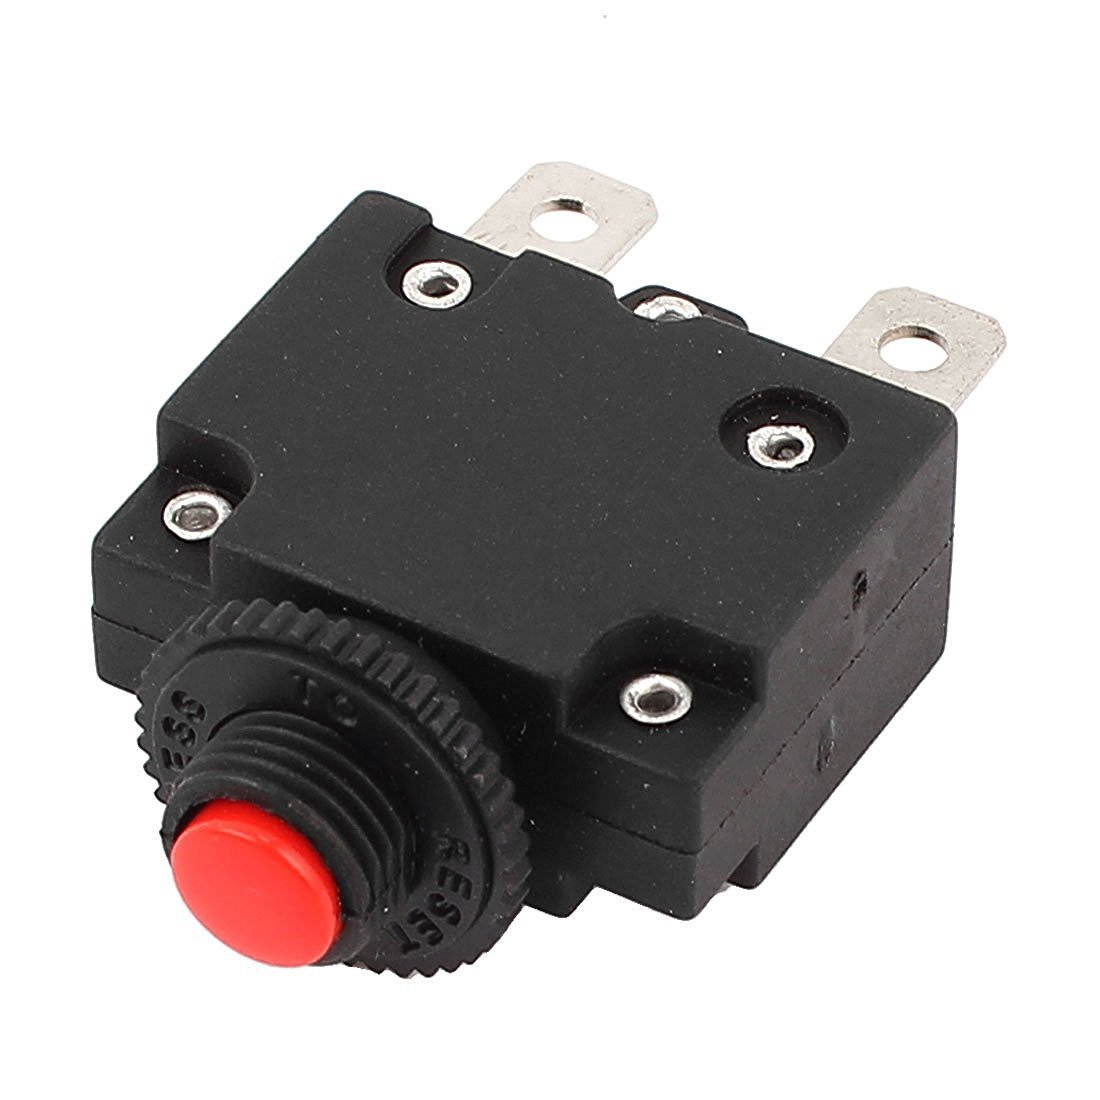 Overload Protector Switch - TOOGOO(R) AC 125/250V 20A Air Compressor Circuit Breaker Overload Protector Switch by TOOGOO(R) (Image #1)